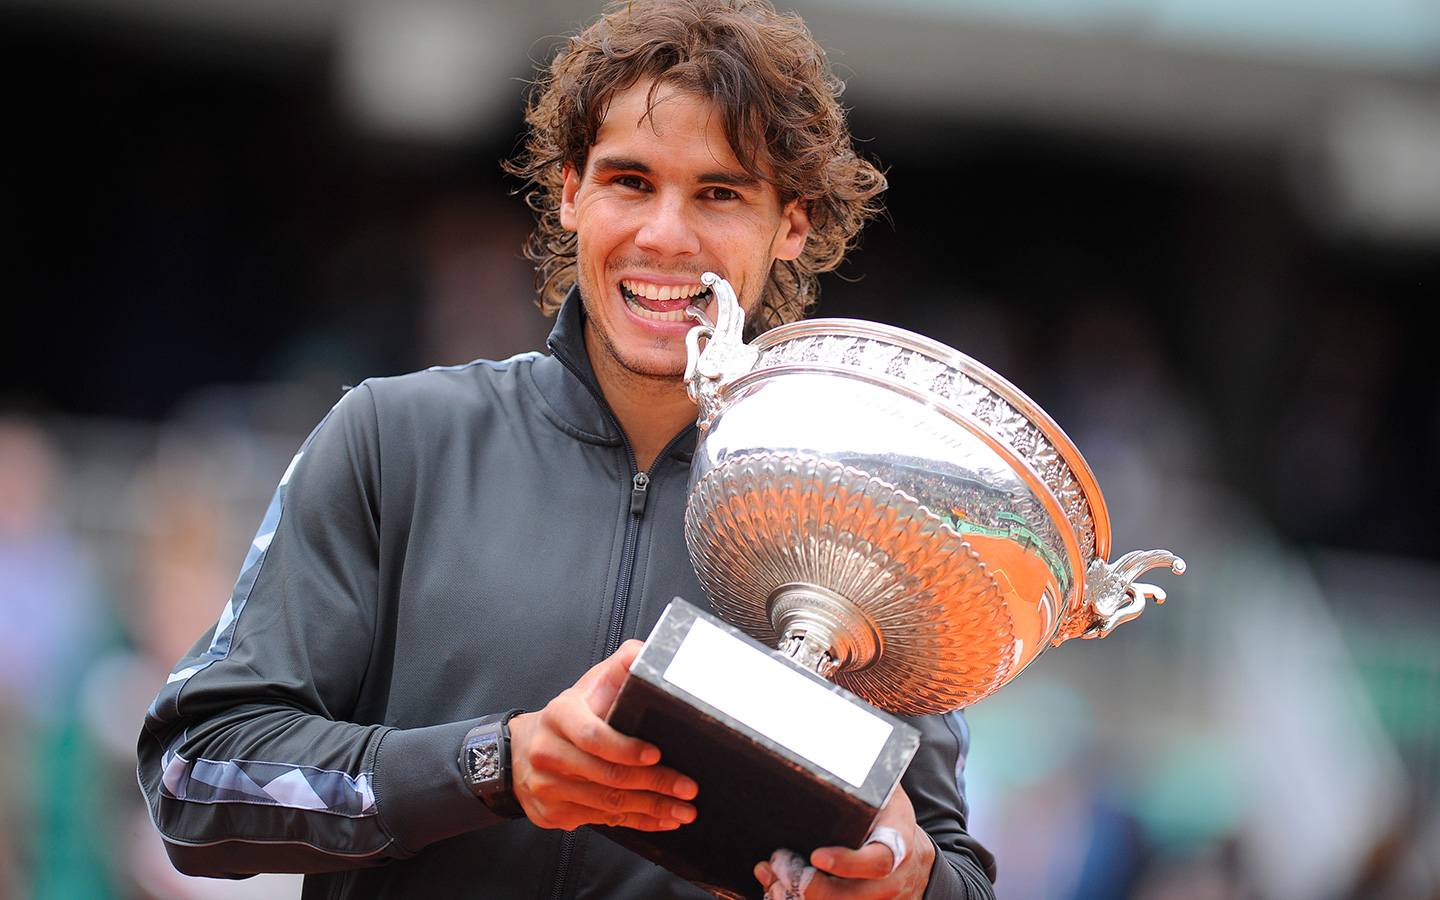 rafael nadal 39 s tryst with roland garros. Black Bedroom Furniture Sets. Home Design Ideas